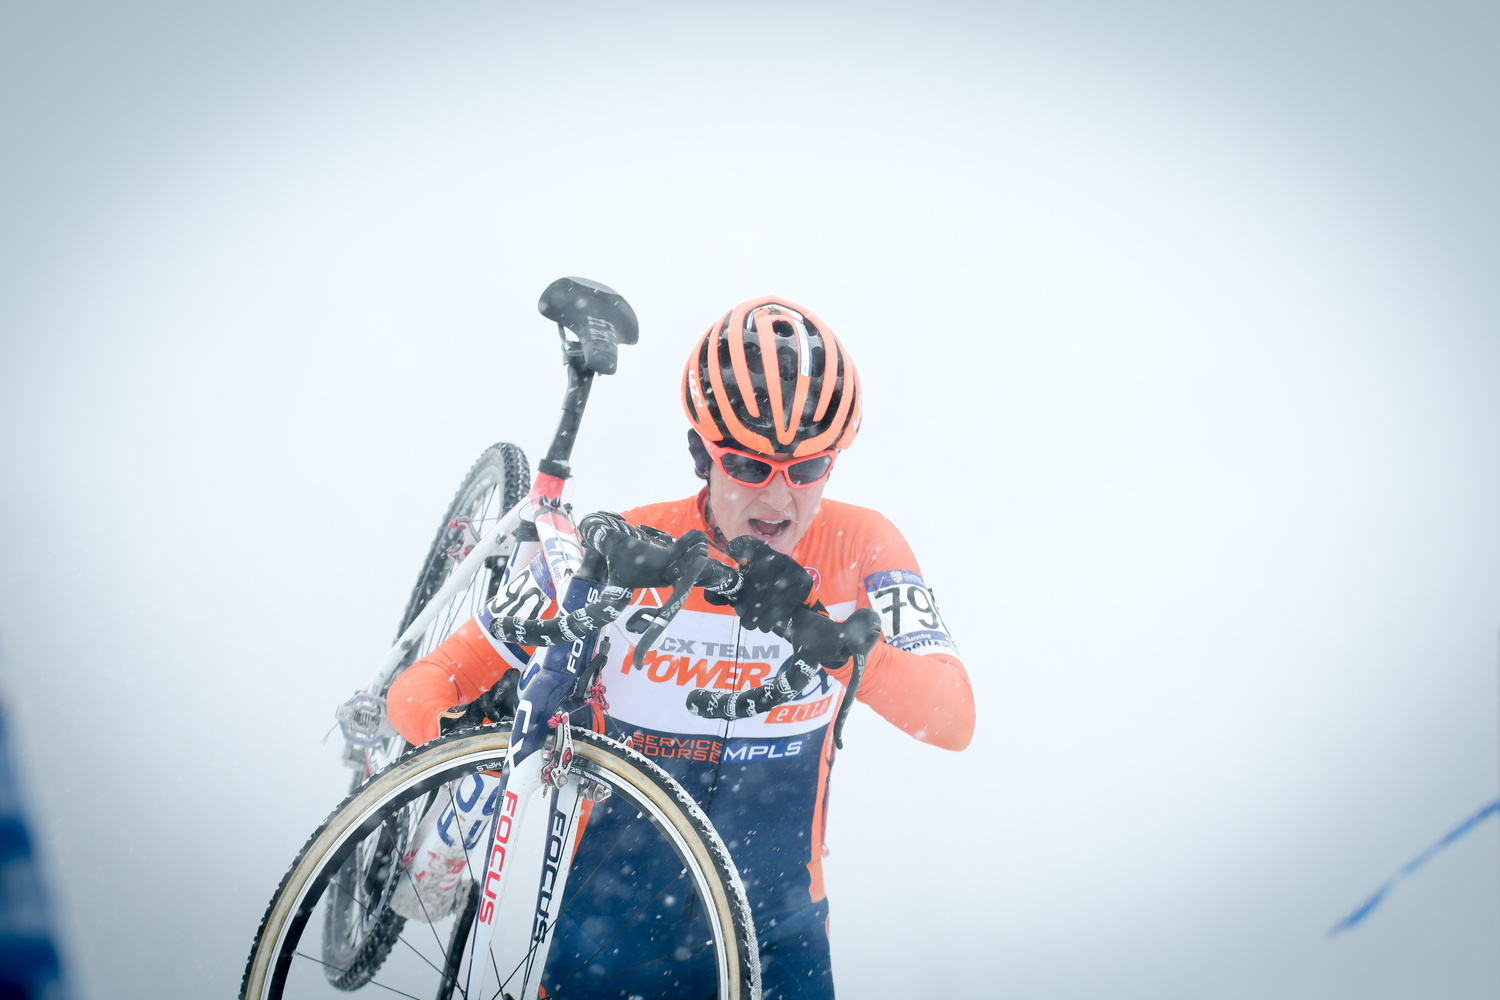 Snowy Cyclecross National Championships  by Douglas Turney